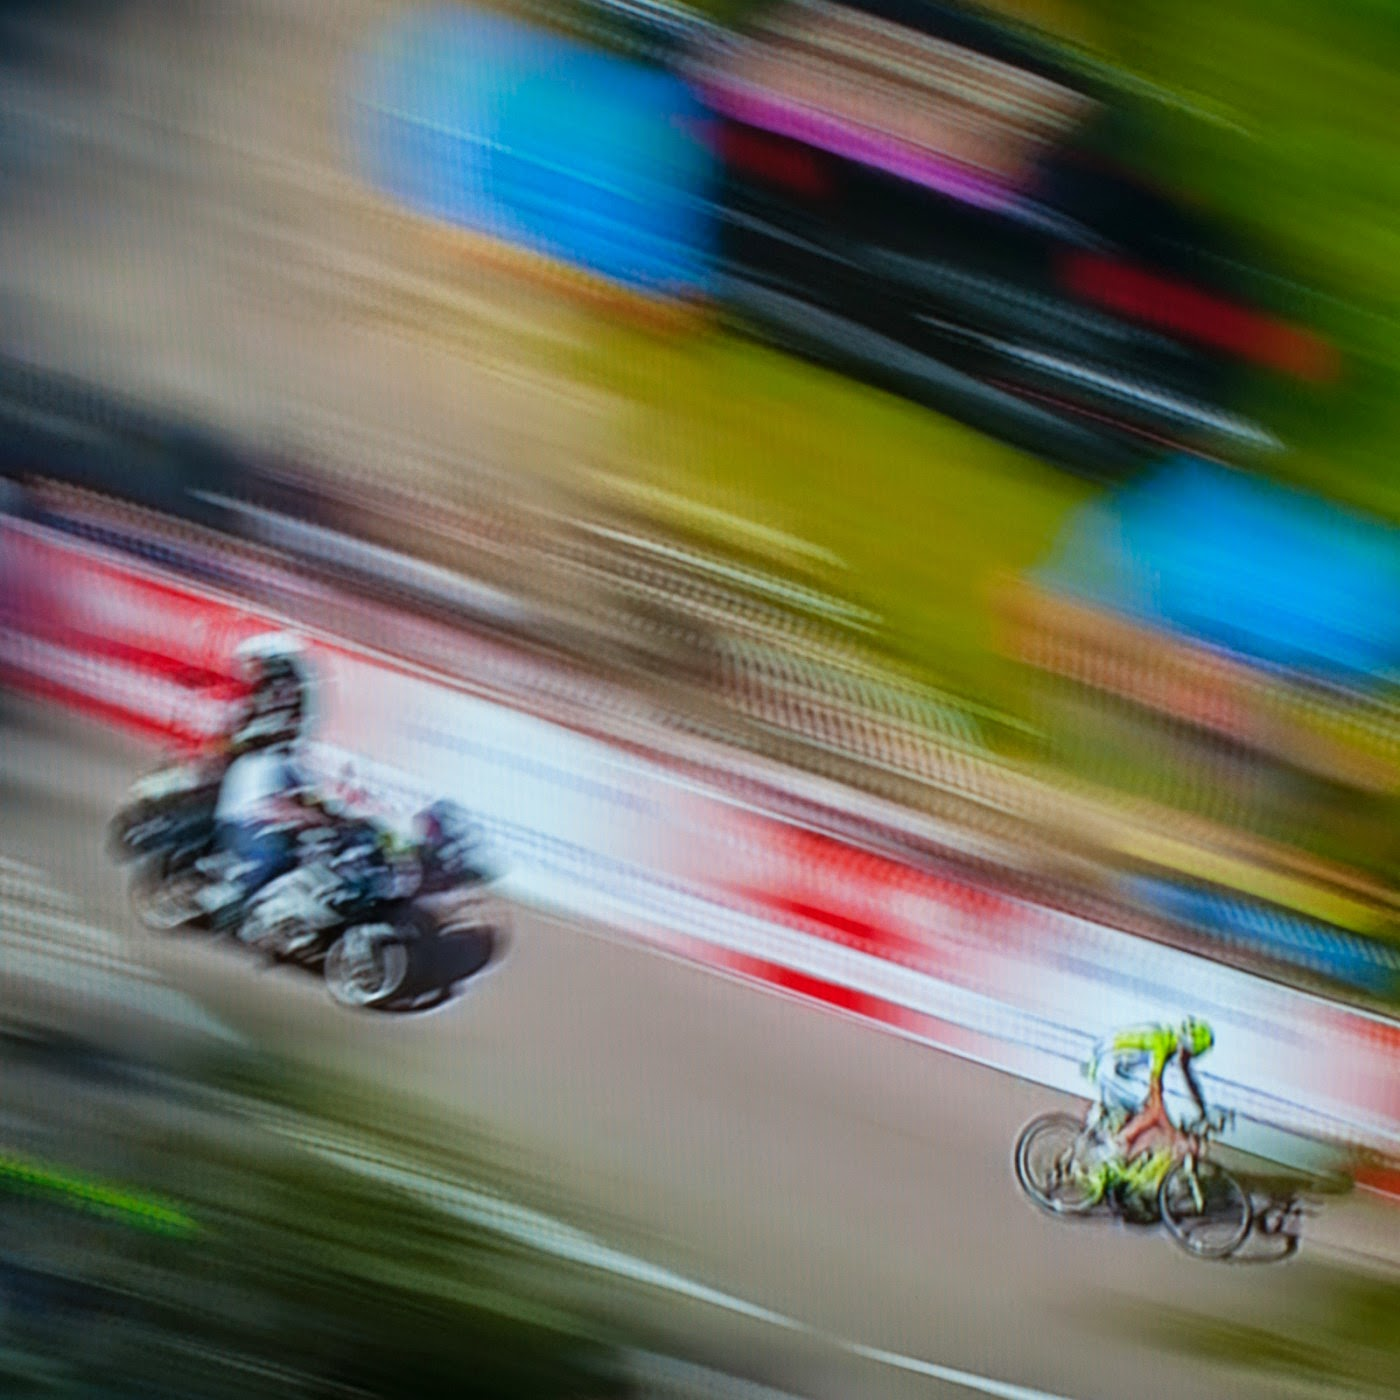 le tour, motion blur, blur, abstract, abstraction, tim macauley, photographic art, you won't see this at MoMA, appropriation, found imagery, le tour 2014, tv footage, portrait, Vincenzo Nibali, team Astana